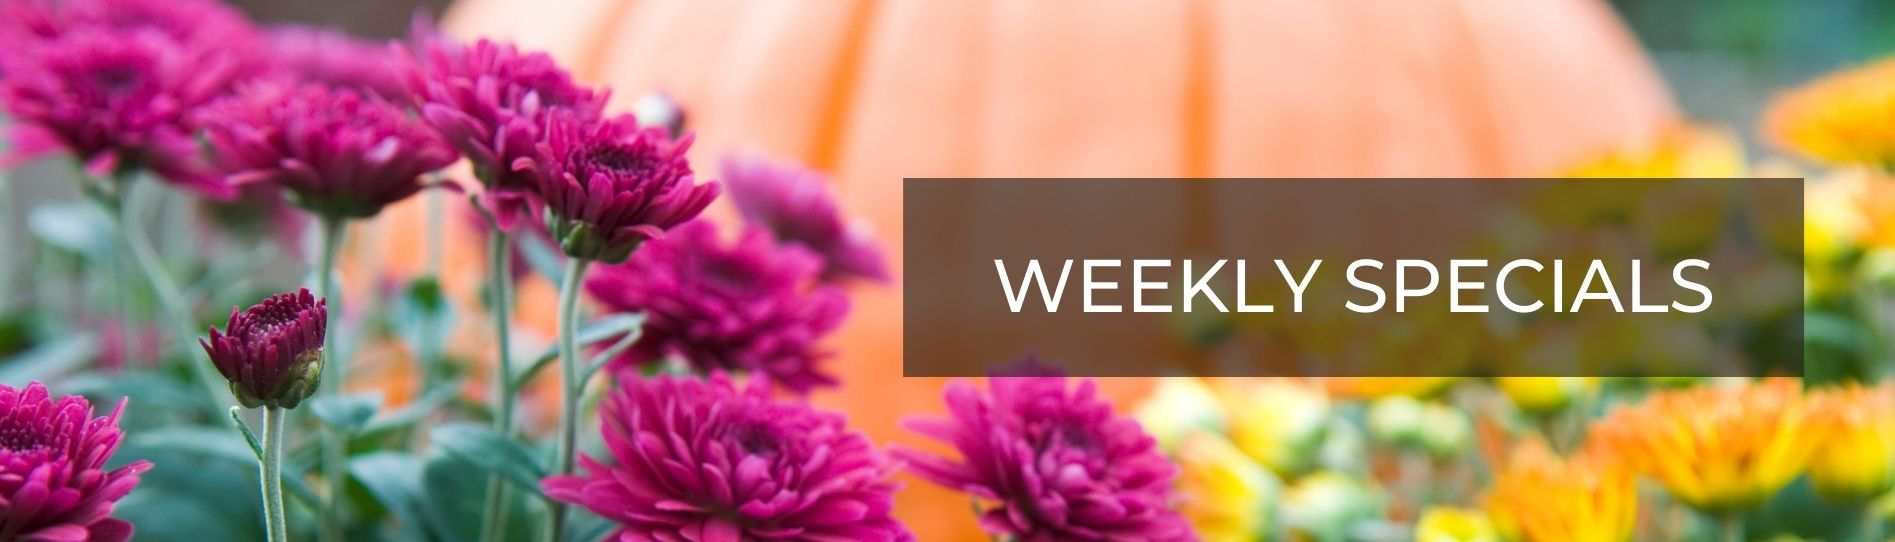 Mums and Pumpkins Weekly Specials Banner